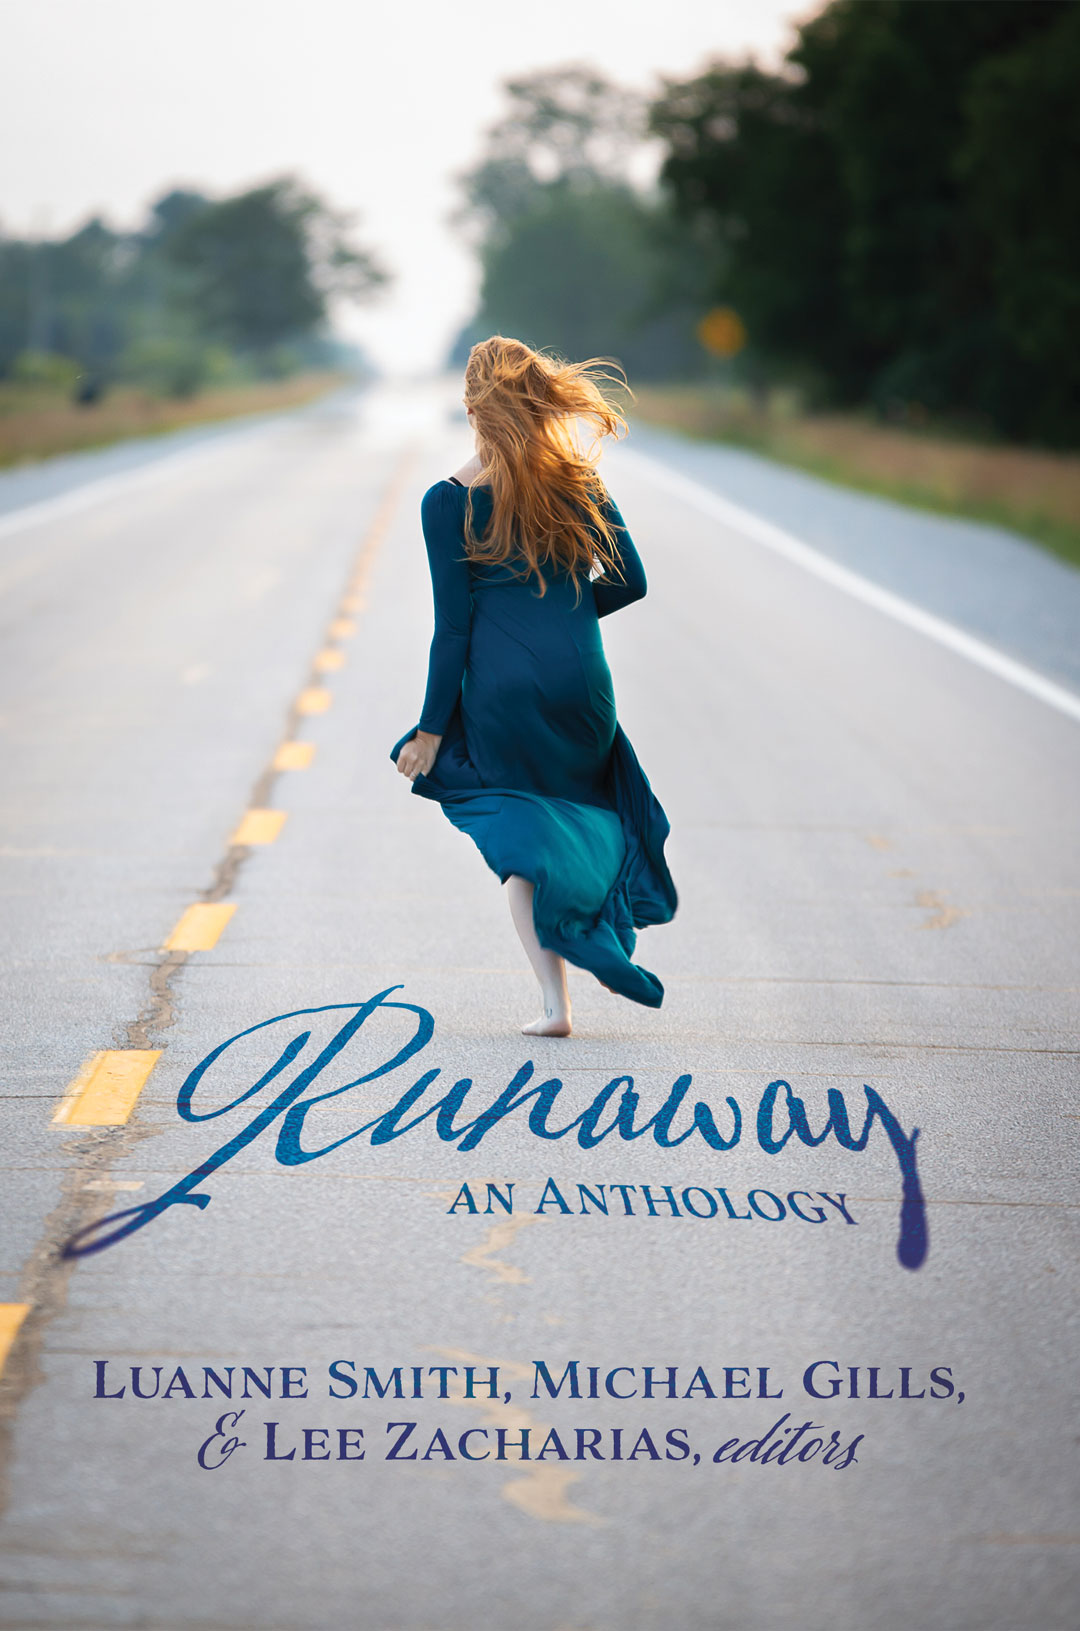 Front cover for Runaway: An Anthology edited by Luanne Smith, Michael Gills, and Lee Zacharias. It shows a woman in a long dress of a rich aqua color running barefooted down the middle of a desolate two-lane highway. She has long red hair flowing out behind her.